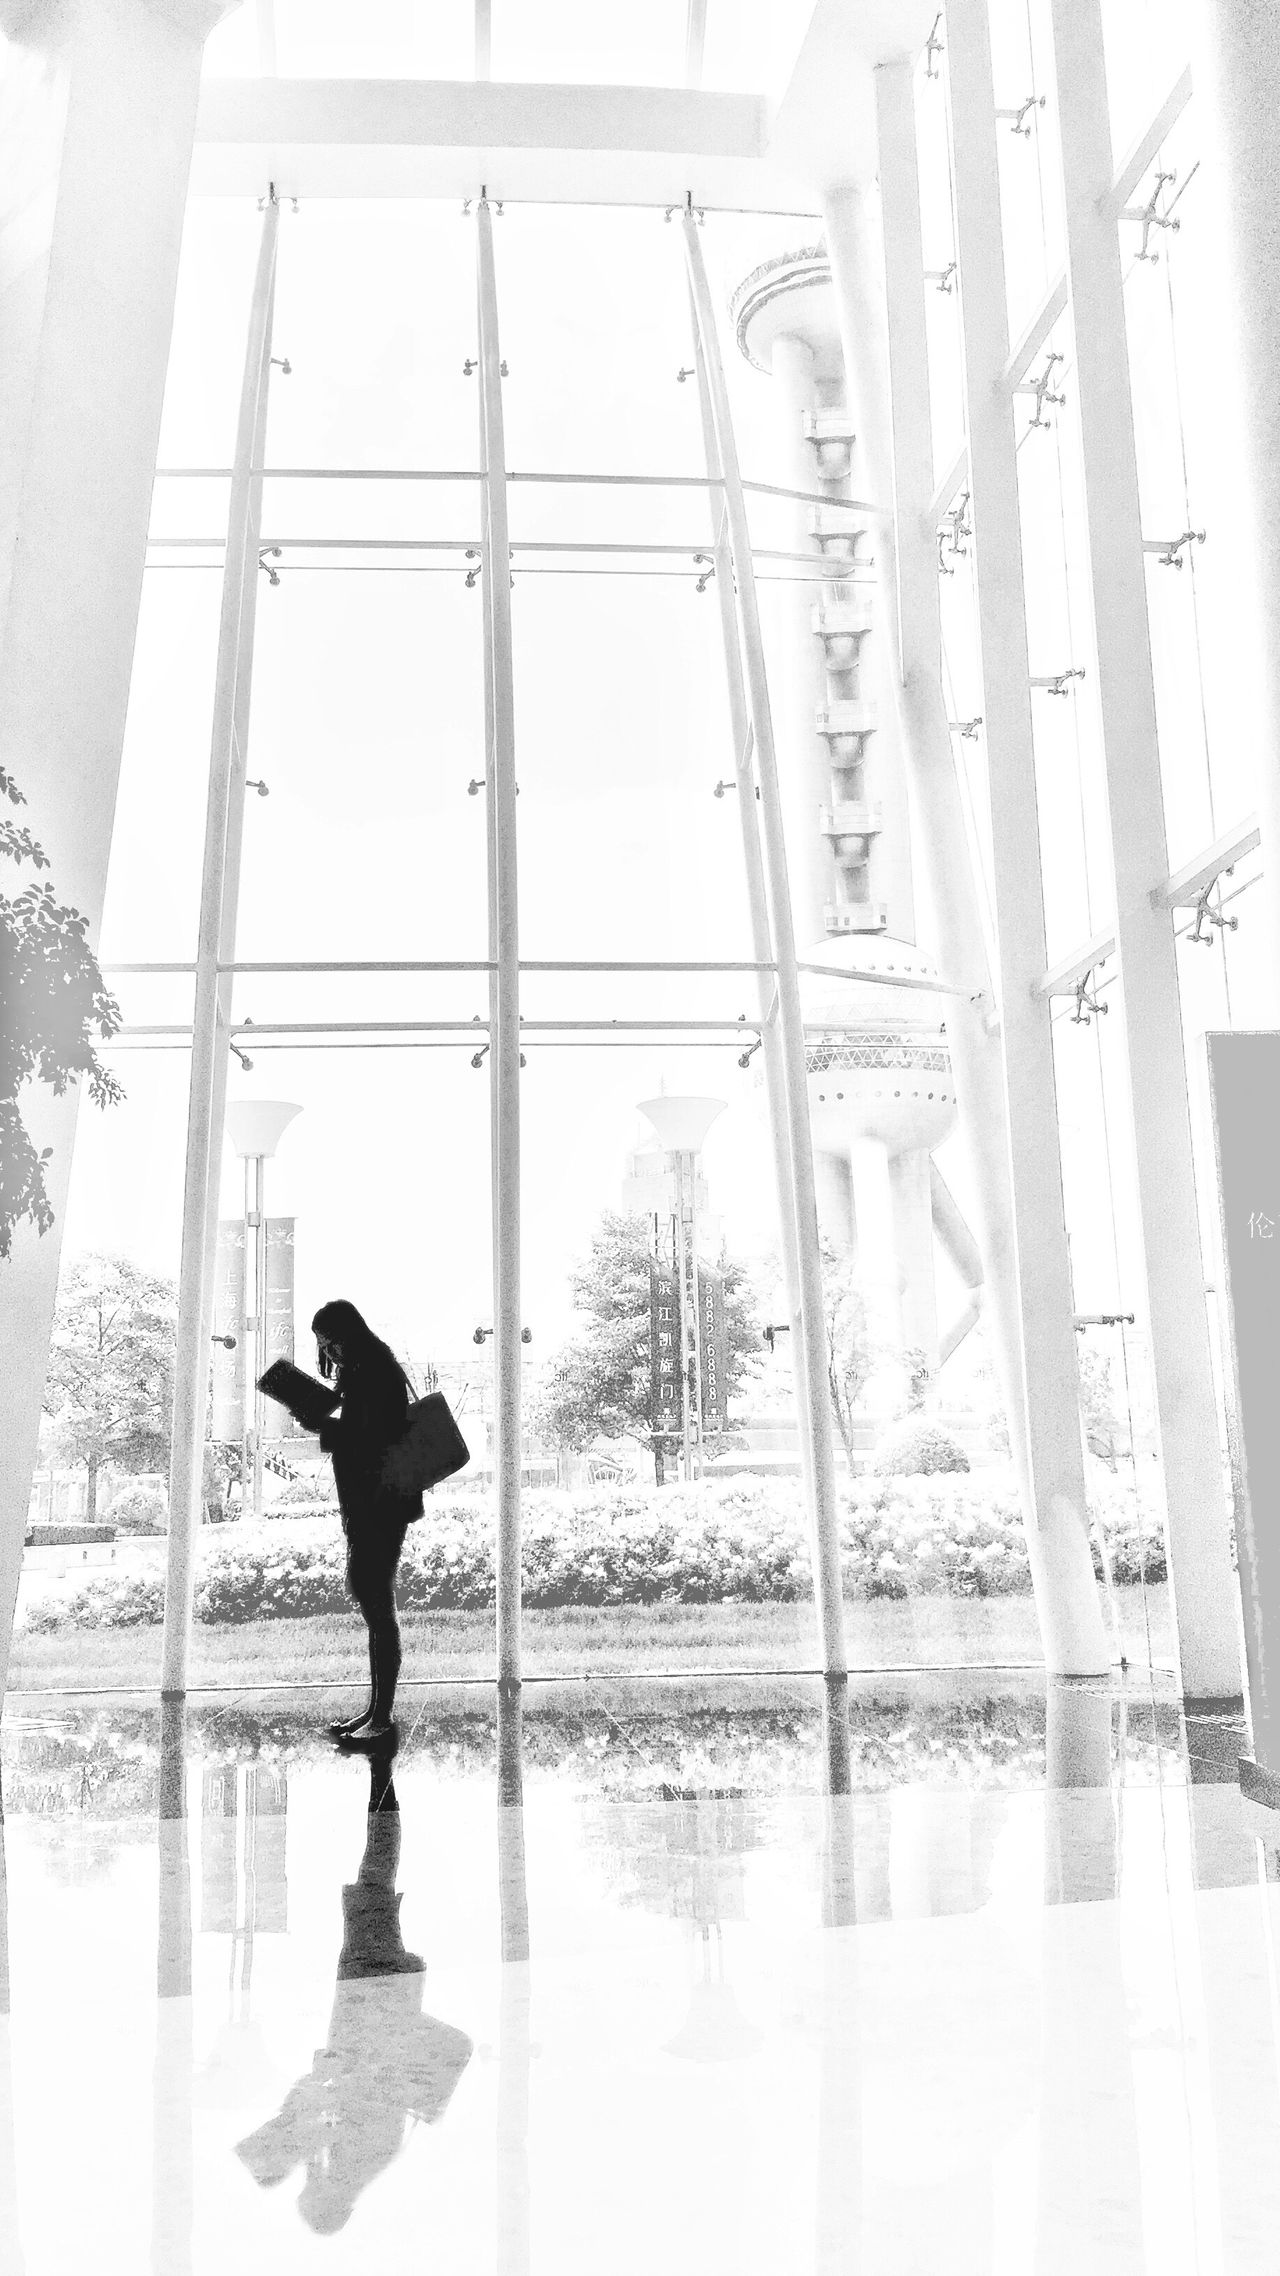 Time stood still, for her One Person Silhouette Built Structure Architecture Modern Building Lobby Glass Indoors  Real People Business Reading